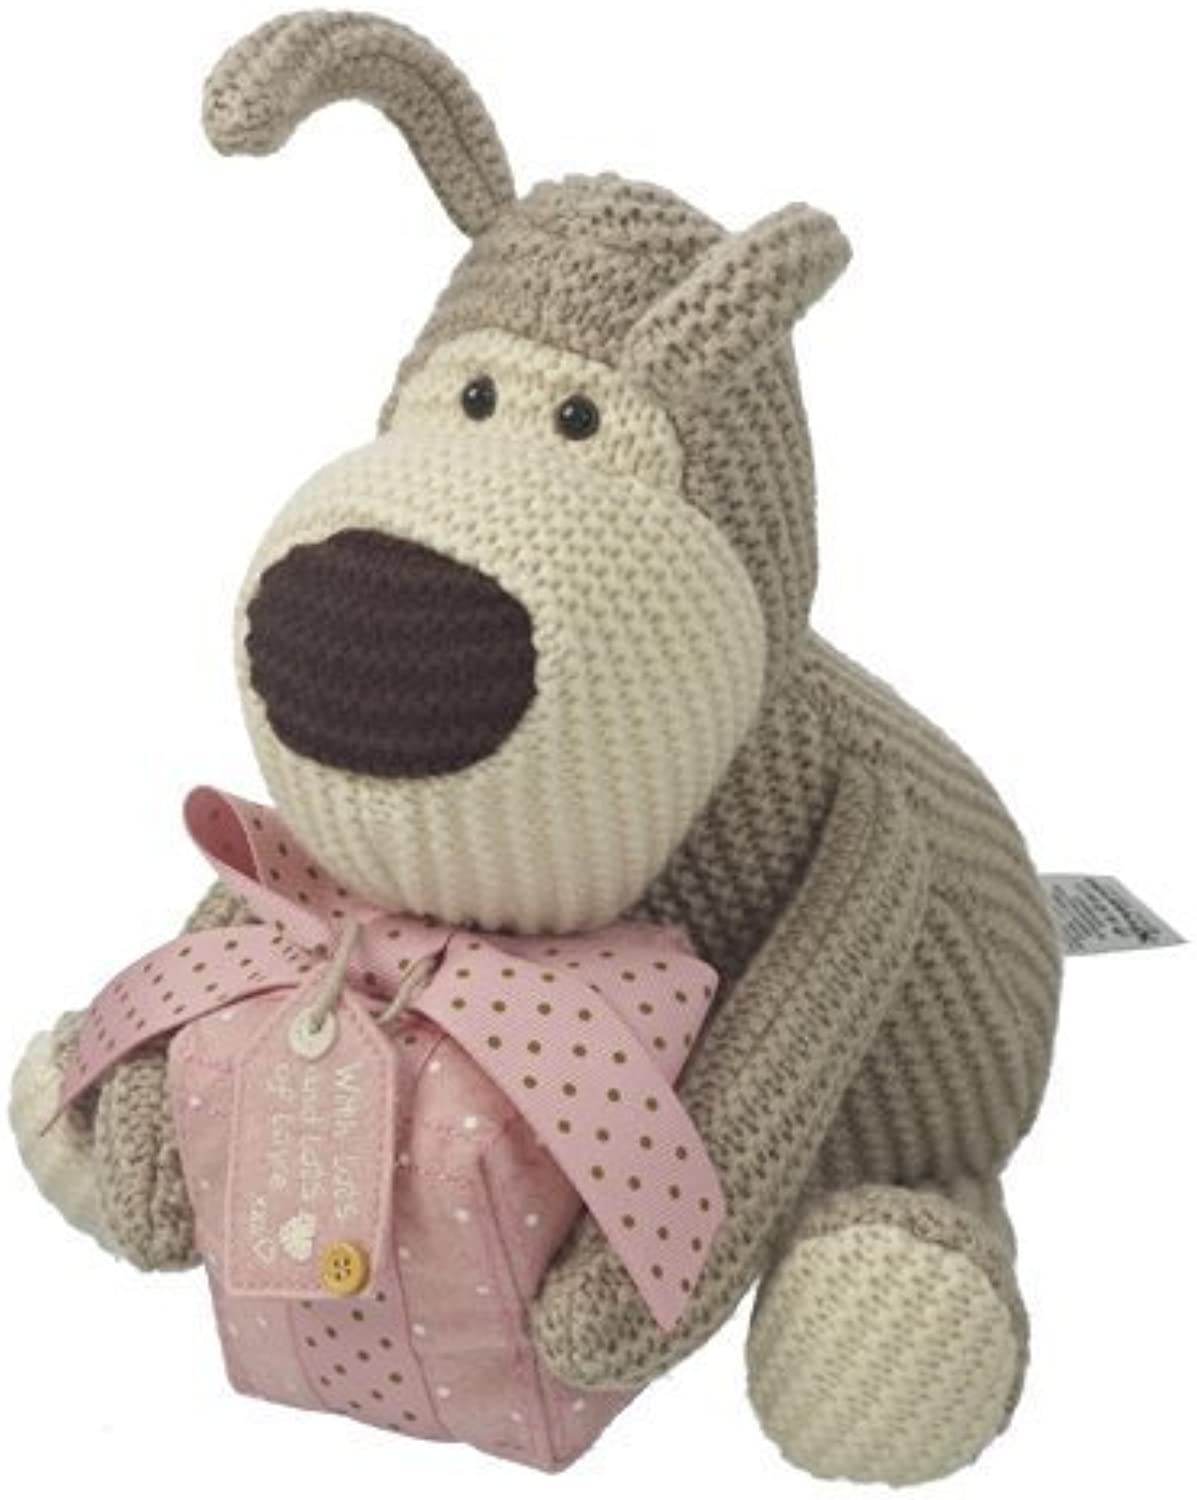 Boofle 8  Plush Toy - Boofle Holding A Present